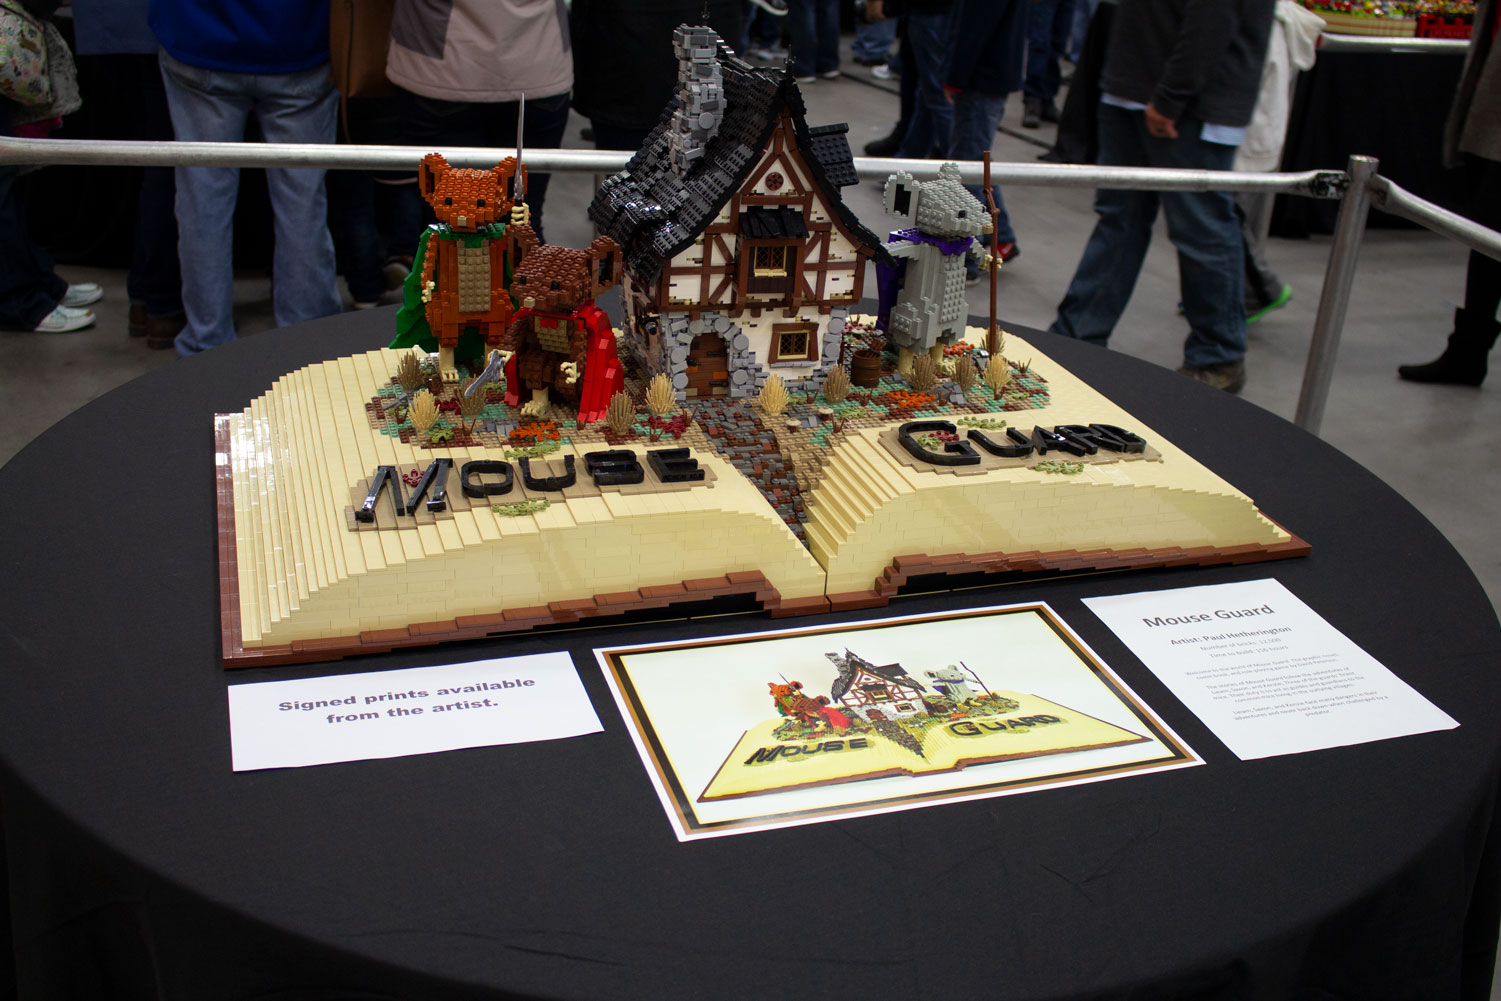 %22Mouse+Guard%22+by+Paul+Hetherington+is+made+up+of+a+total+of+12%2C500+Lego+bricks+and+took+the+artist+156+hours+to+build.